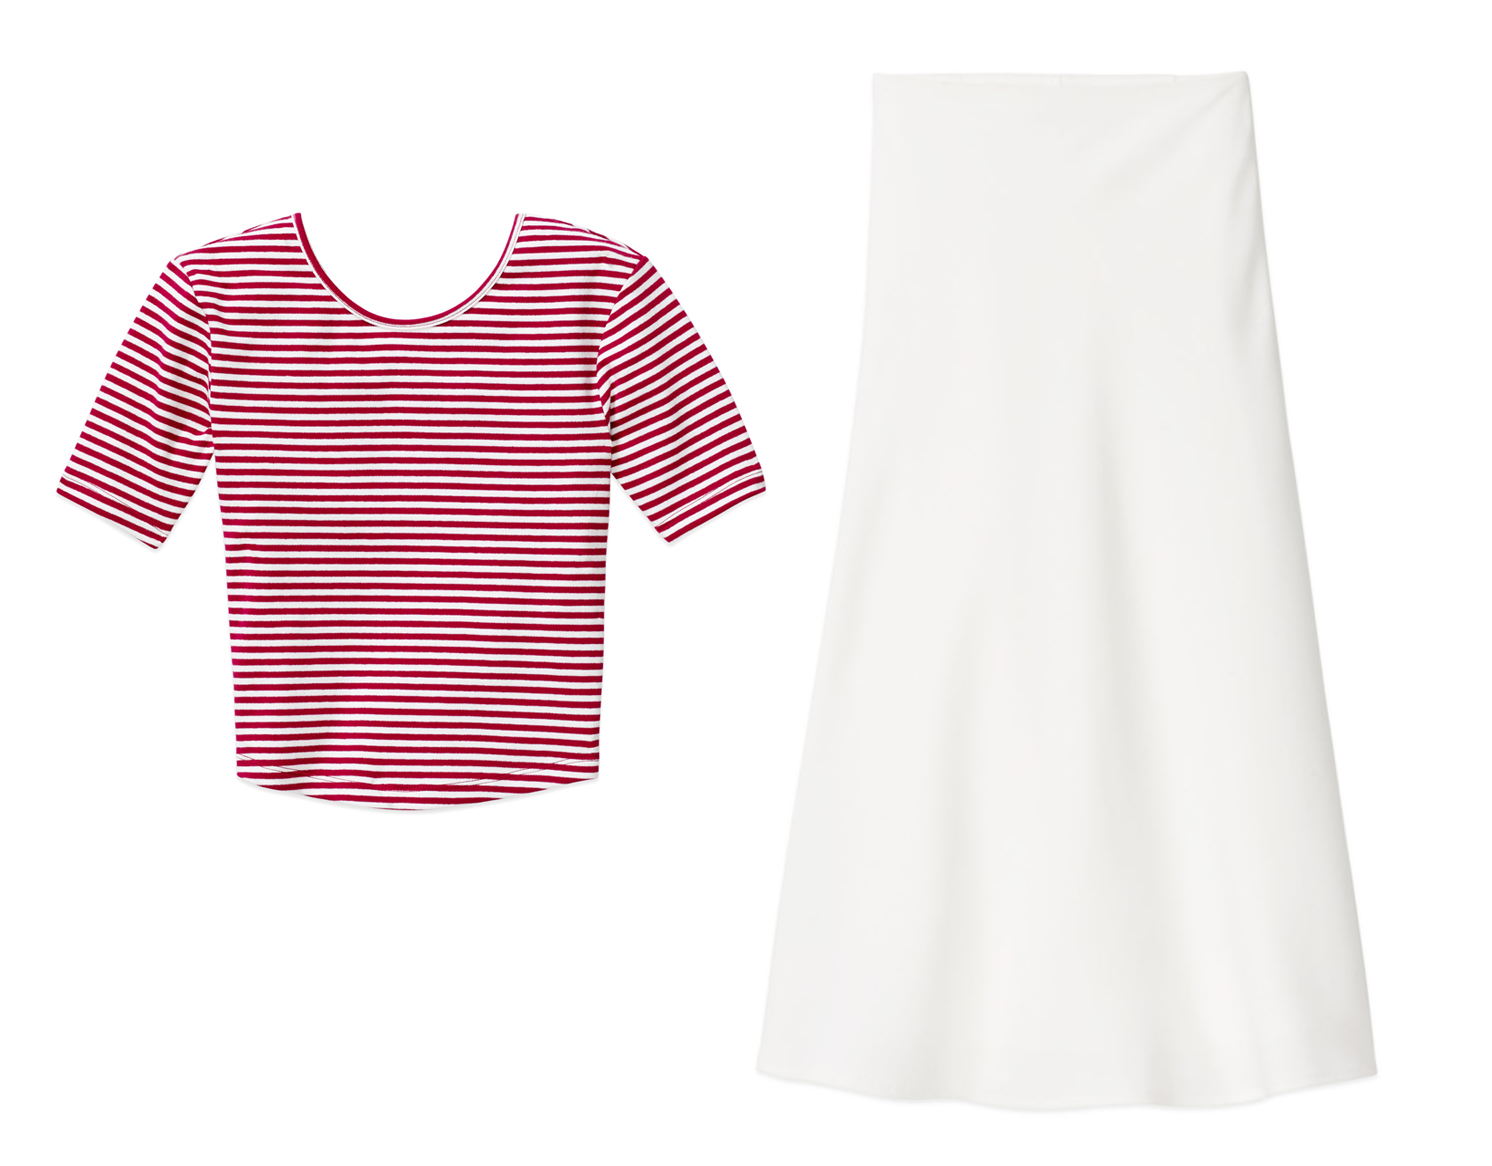 Celebrate Canada Day Fashion Style Aritzia Sunday Best Jong T-Shirt, Babaton Reilly Skirt